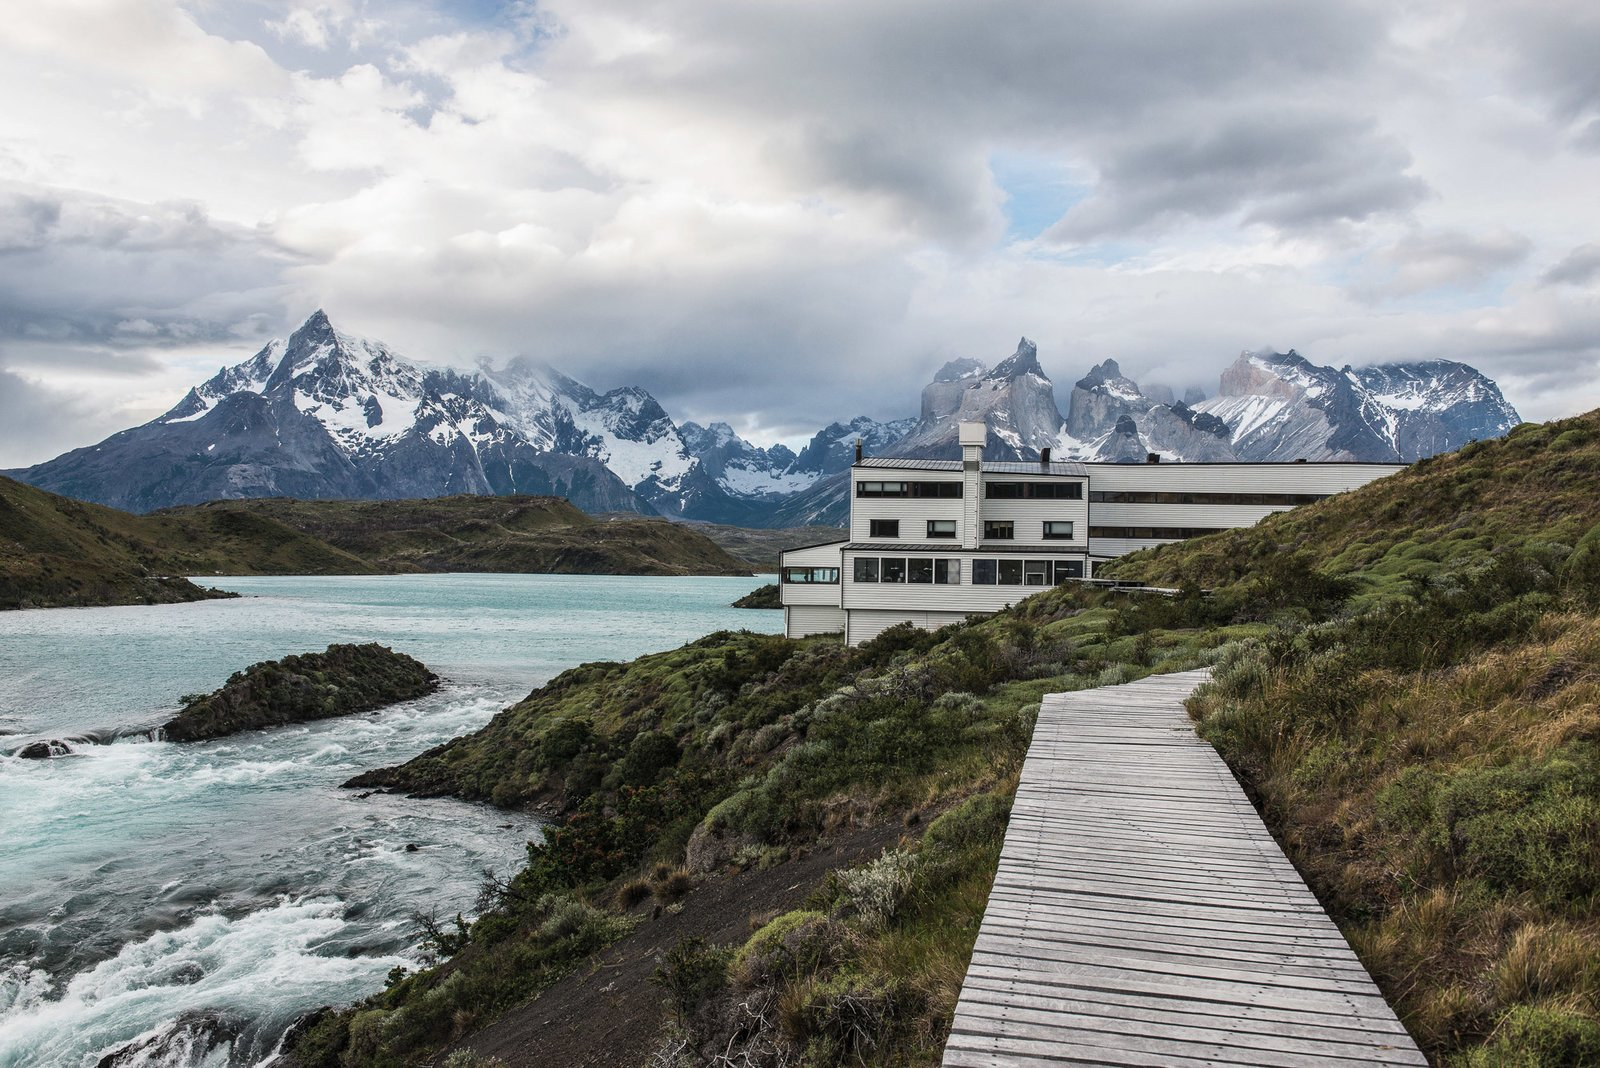 Photo 1 of 9 in Explora Patagonia Hotel – Your New Bucket List Addition